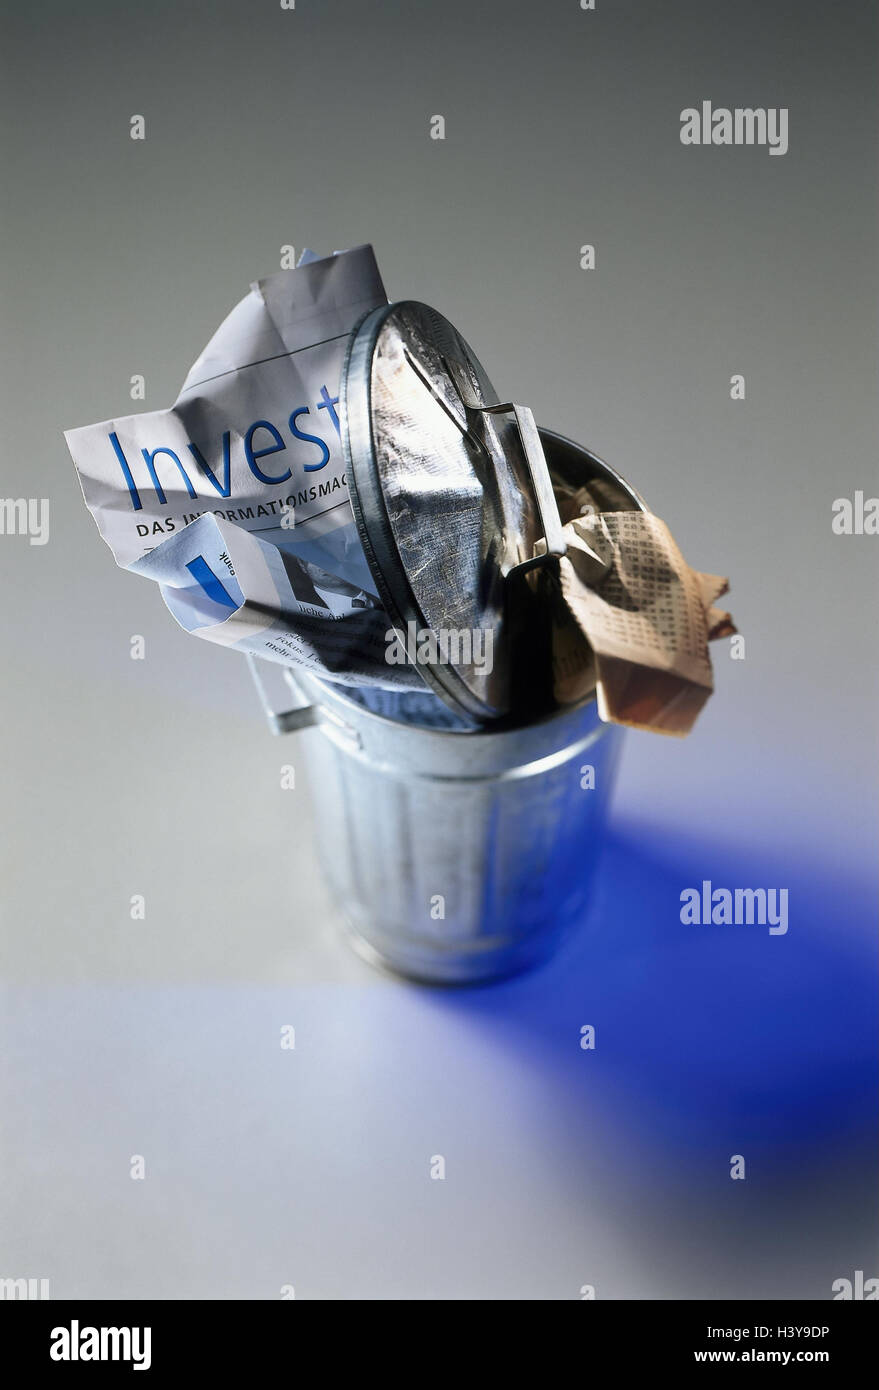 Icon, stock exchange, losses, garbage tonne, financial newspapers, Still life, product photography, slump, economy, - Stock Image